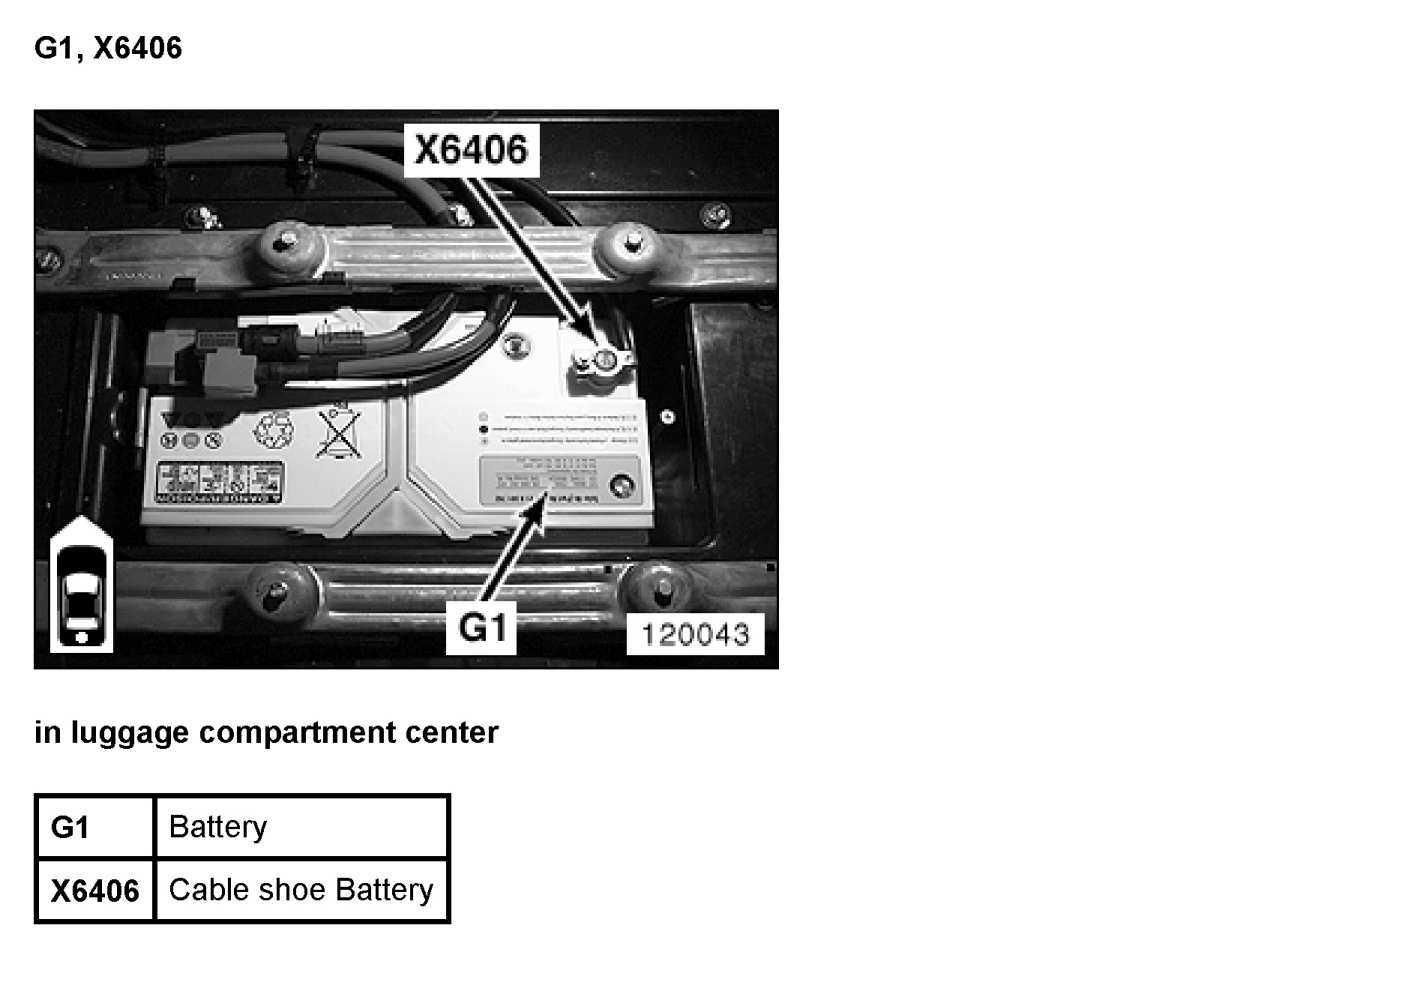 Can you recharge a BMW X5 battery in place by using the positive